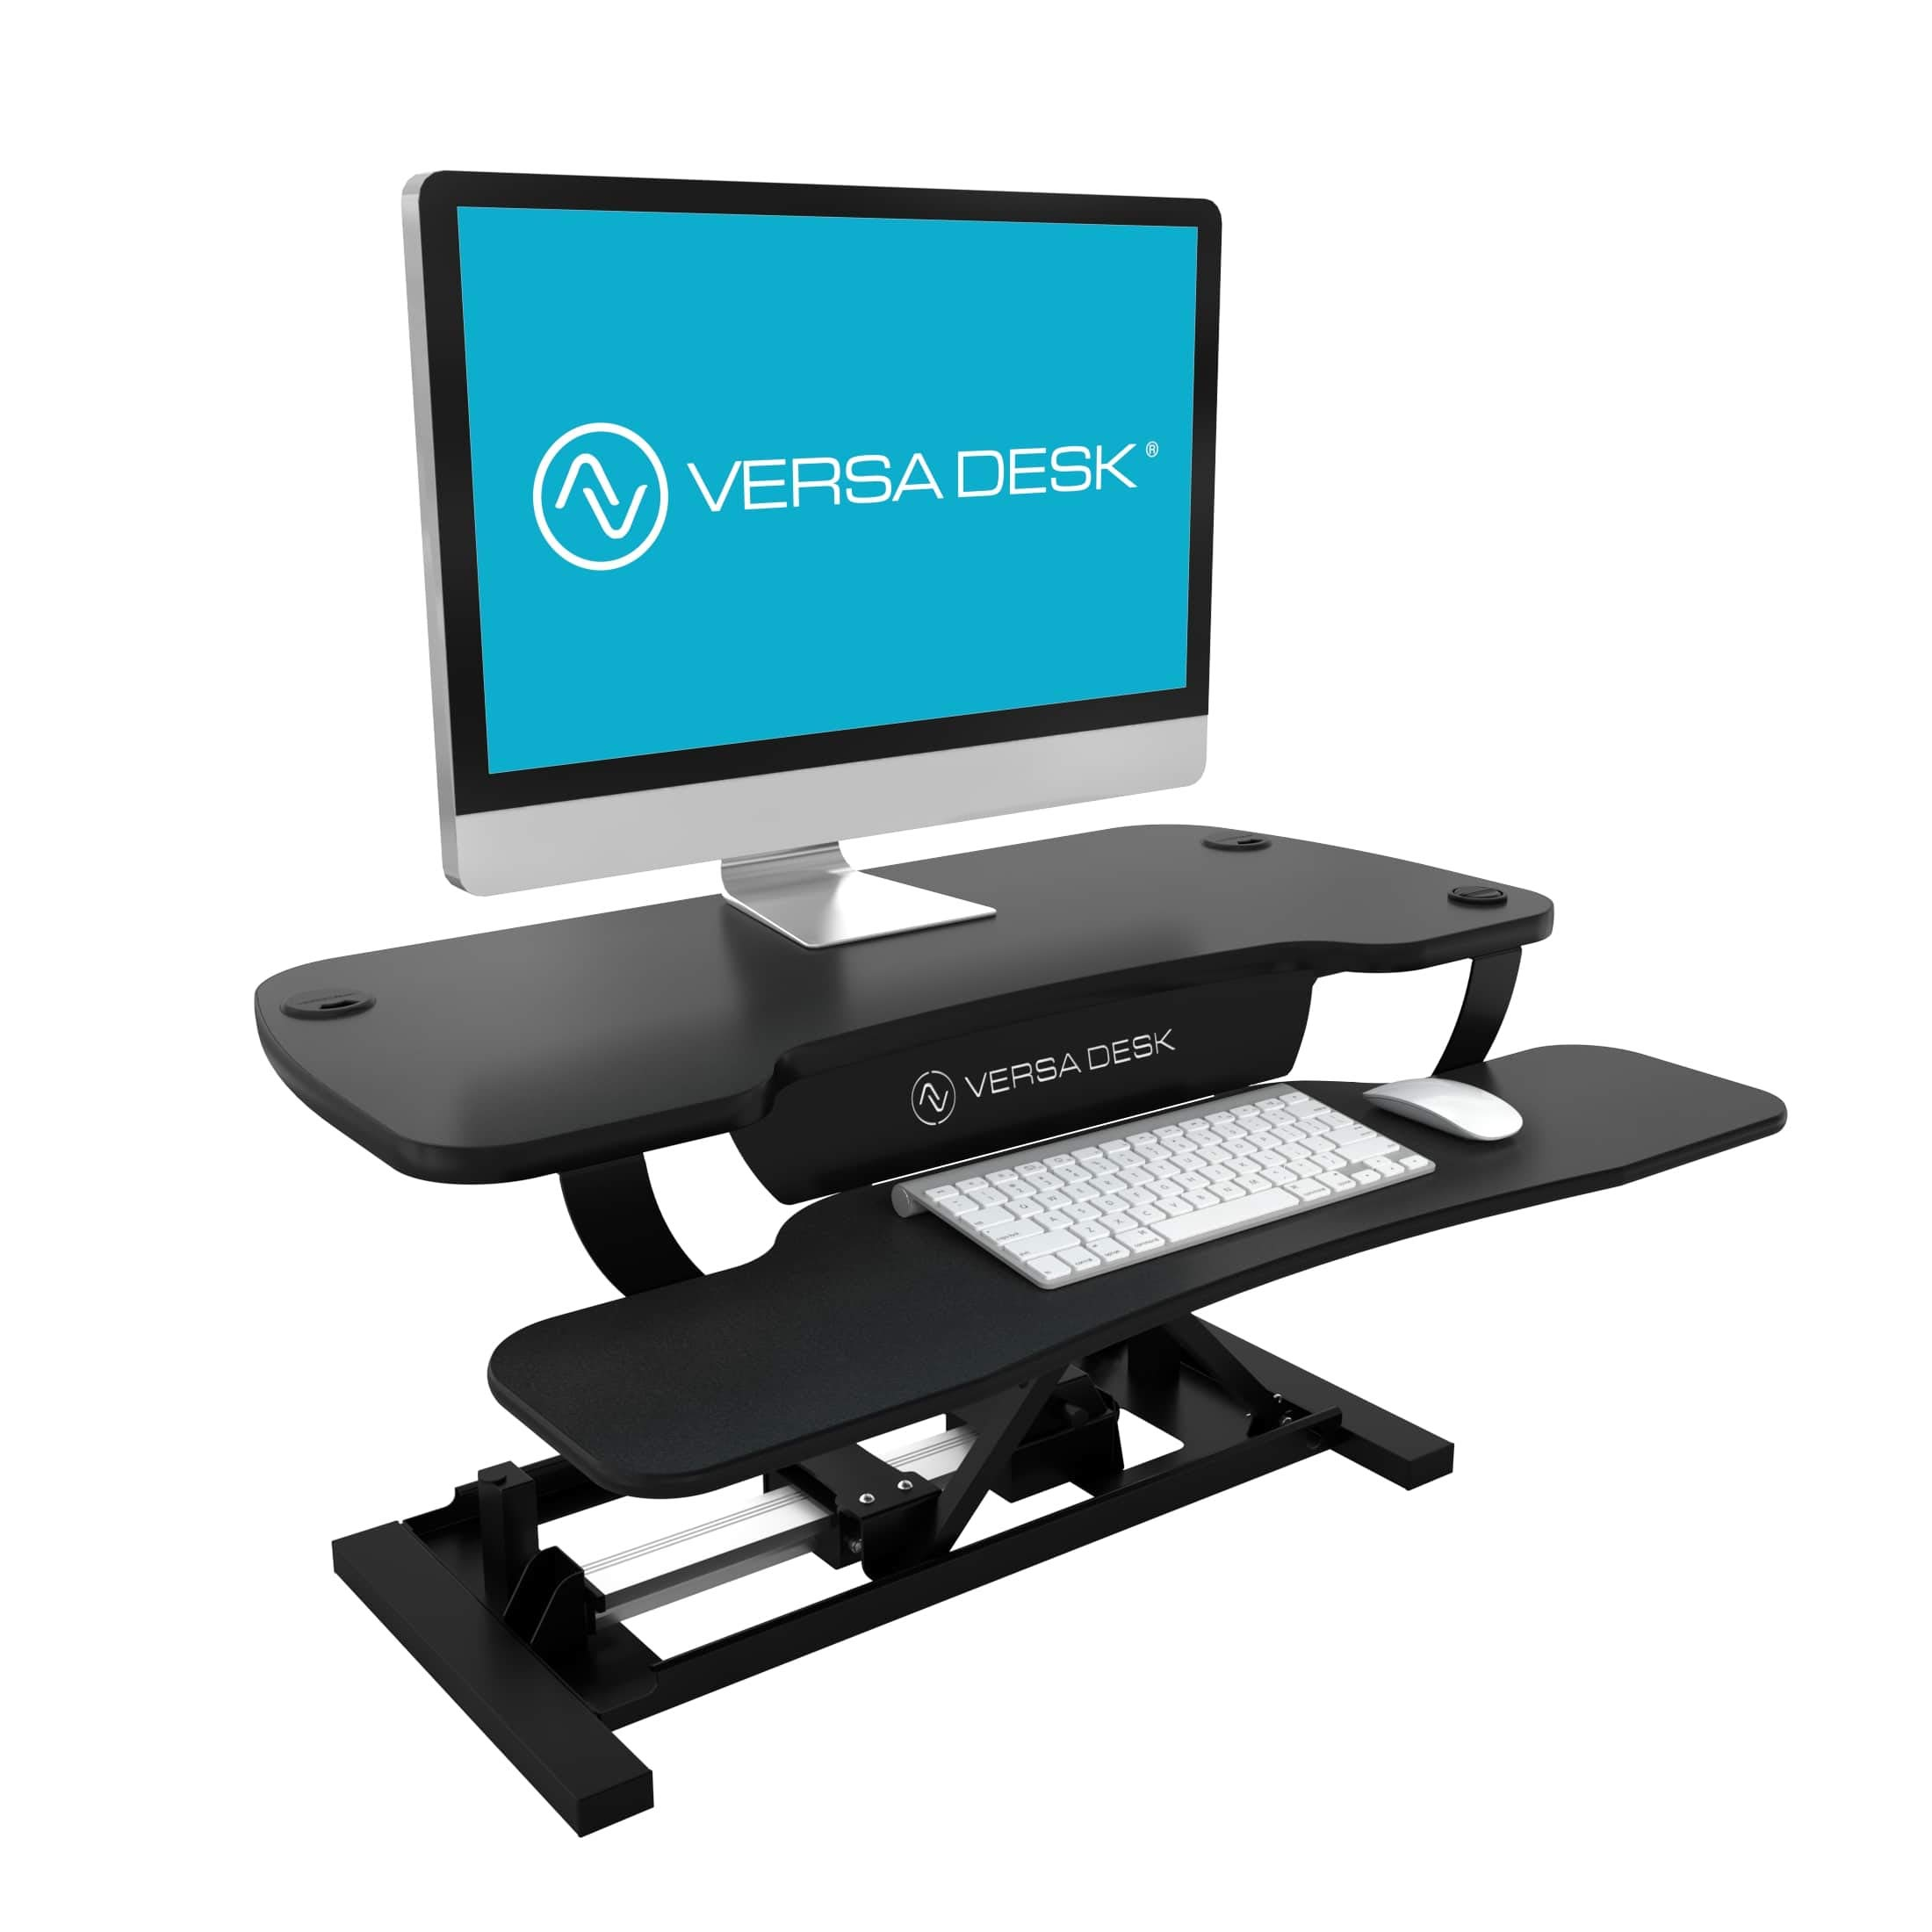 VersaDesk Power Pro - 36'' Electric Height-Adjustable Desk Riser - Sit to Stand Desktop with Keyboard and Mouse Tray - Black